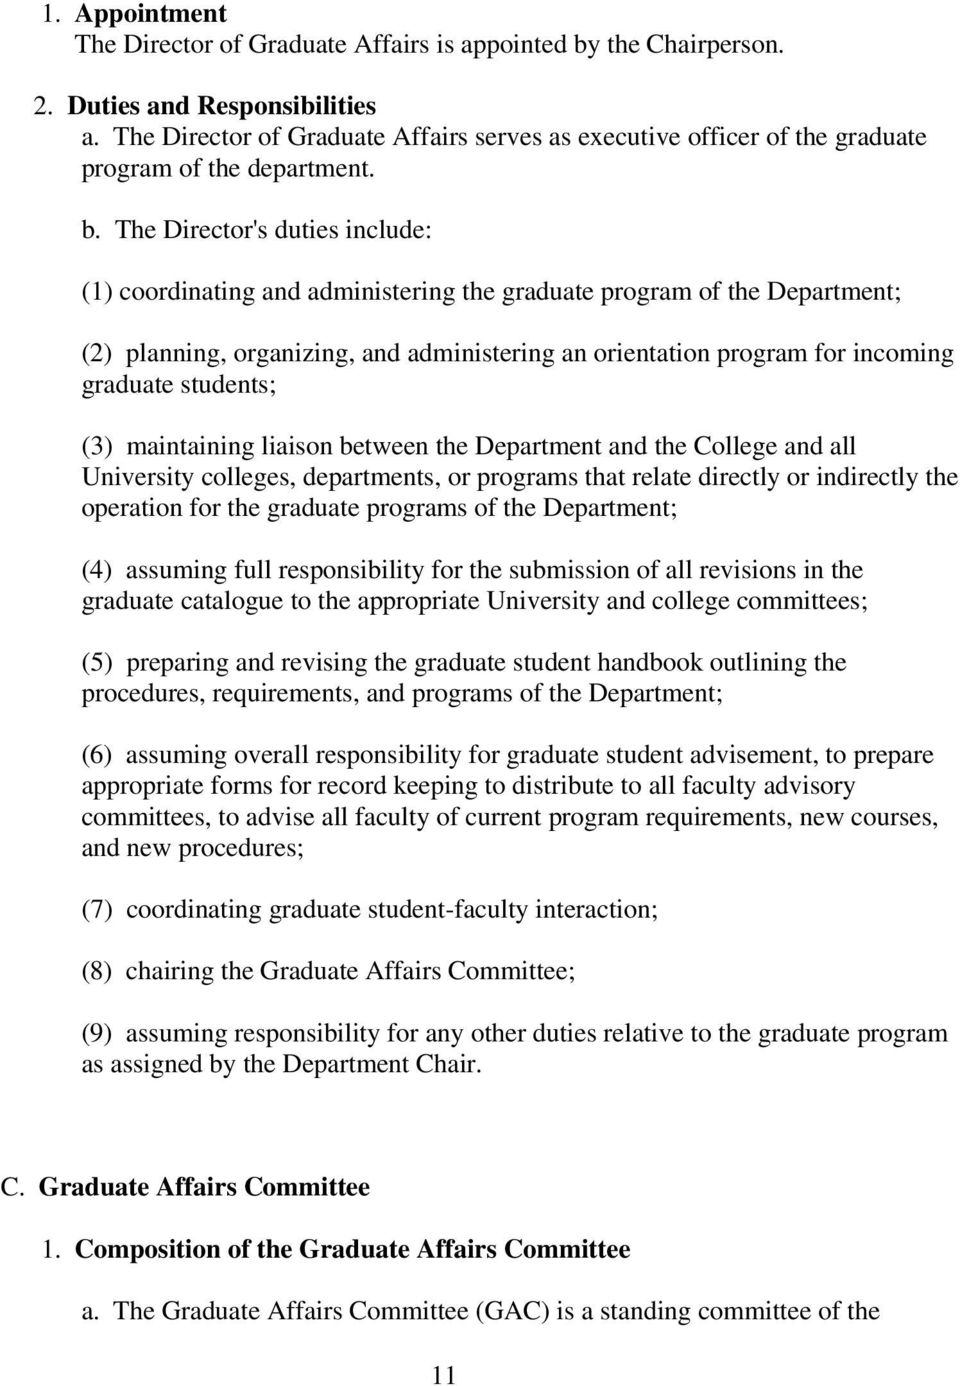 The Director's duties include: (1) coordinating and administering the graduate program of the Department; (2) planning, organizing, and administering an orientation program for incoming graduate